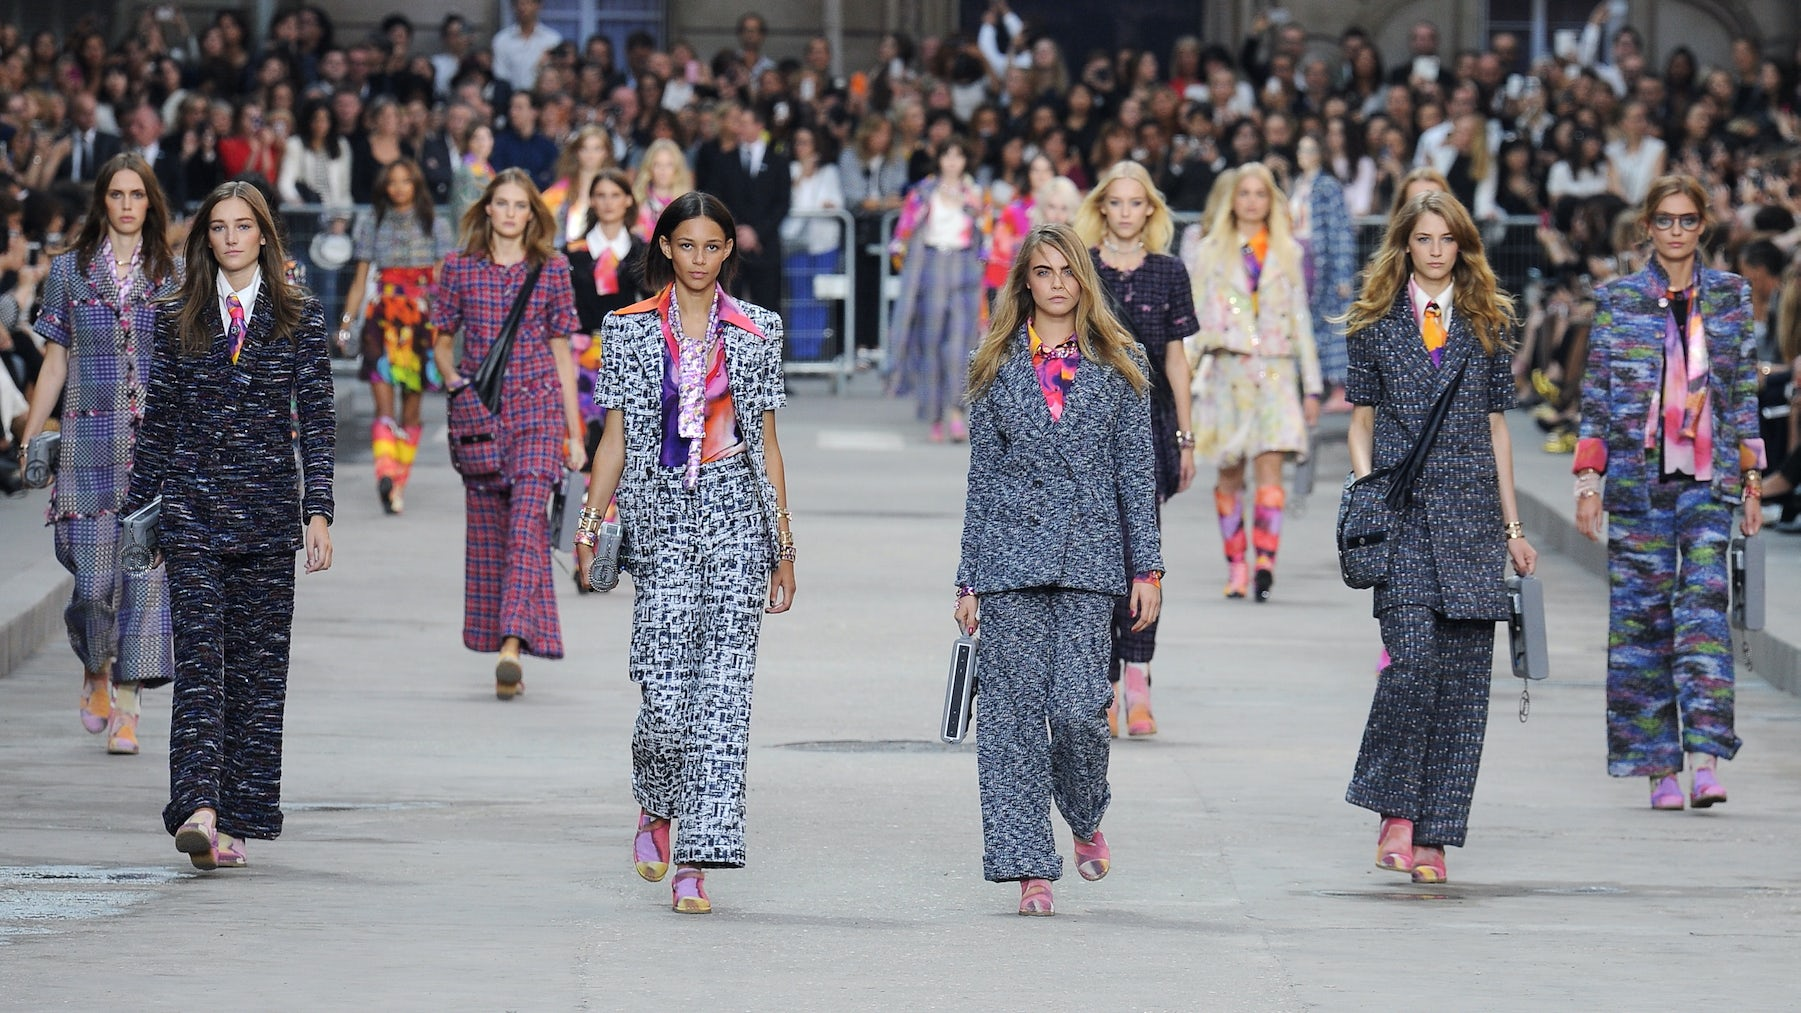 Models walk the runway at Chanel Spring/Summer 2015 | Source: Indigital